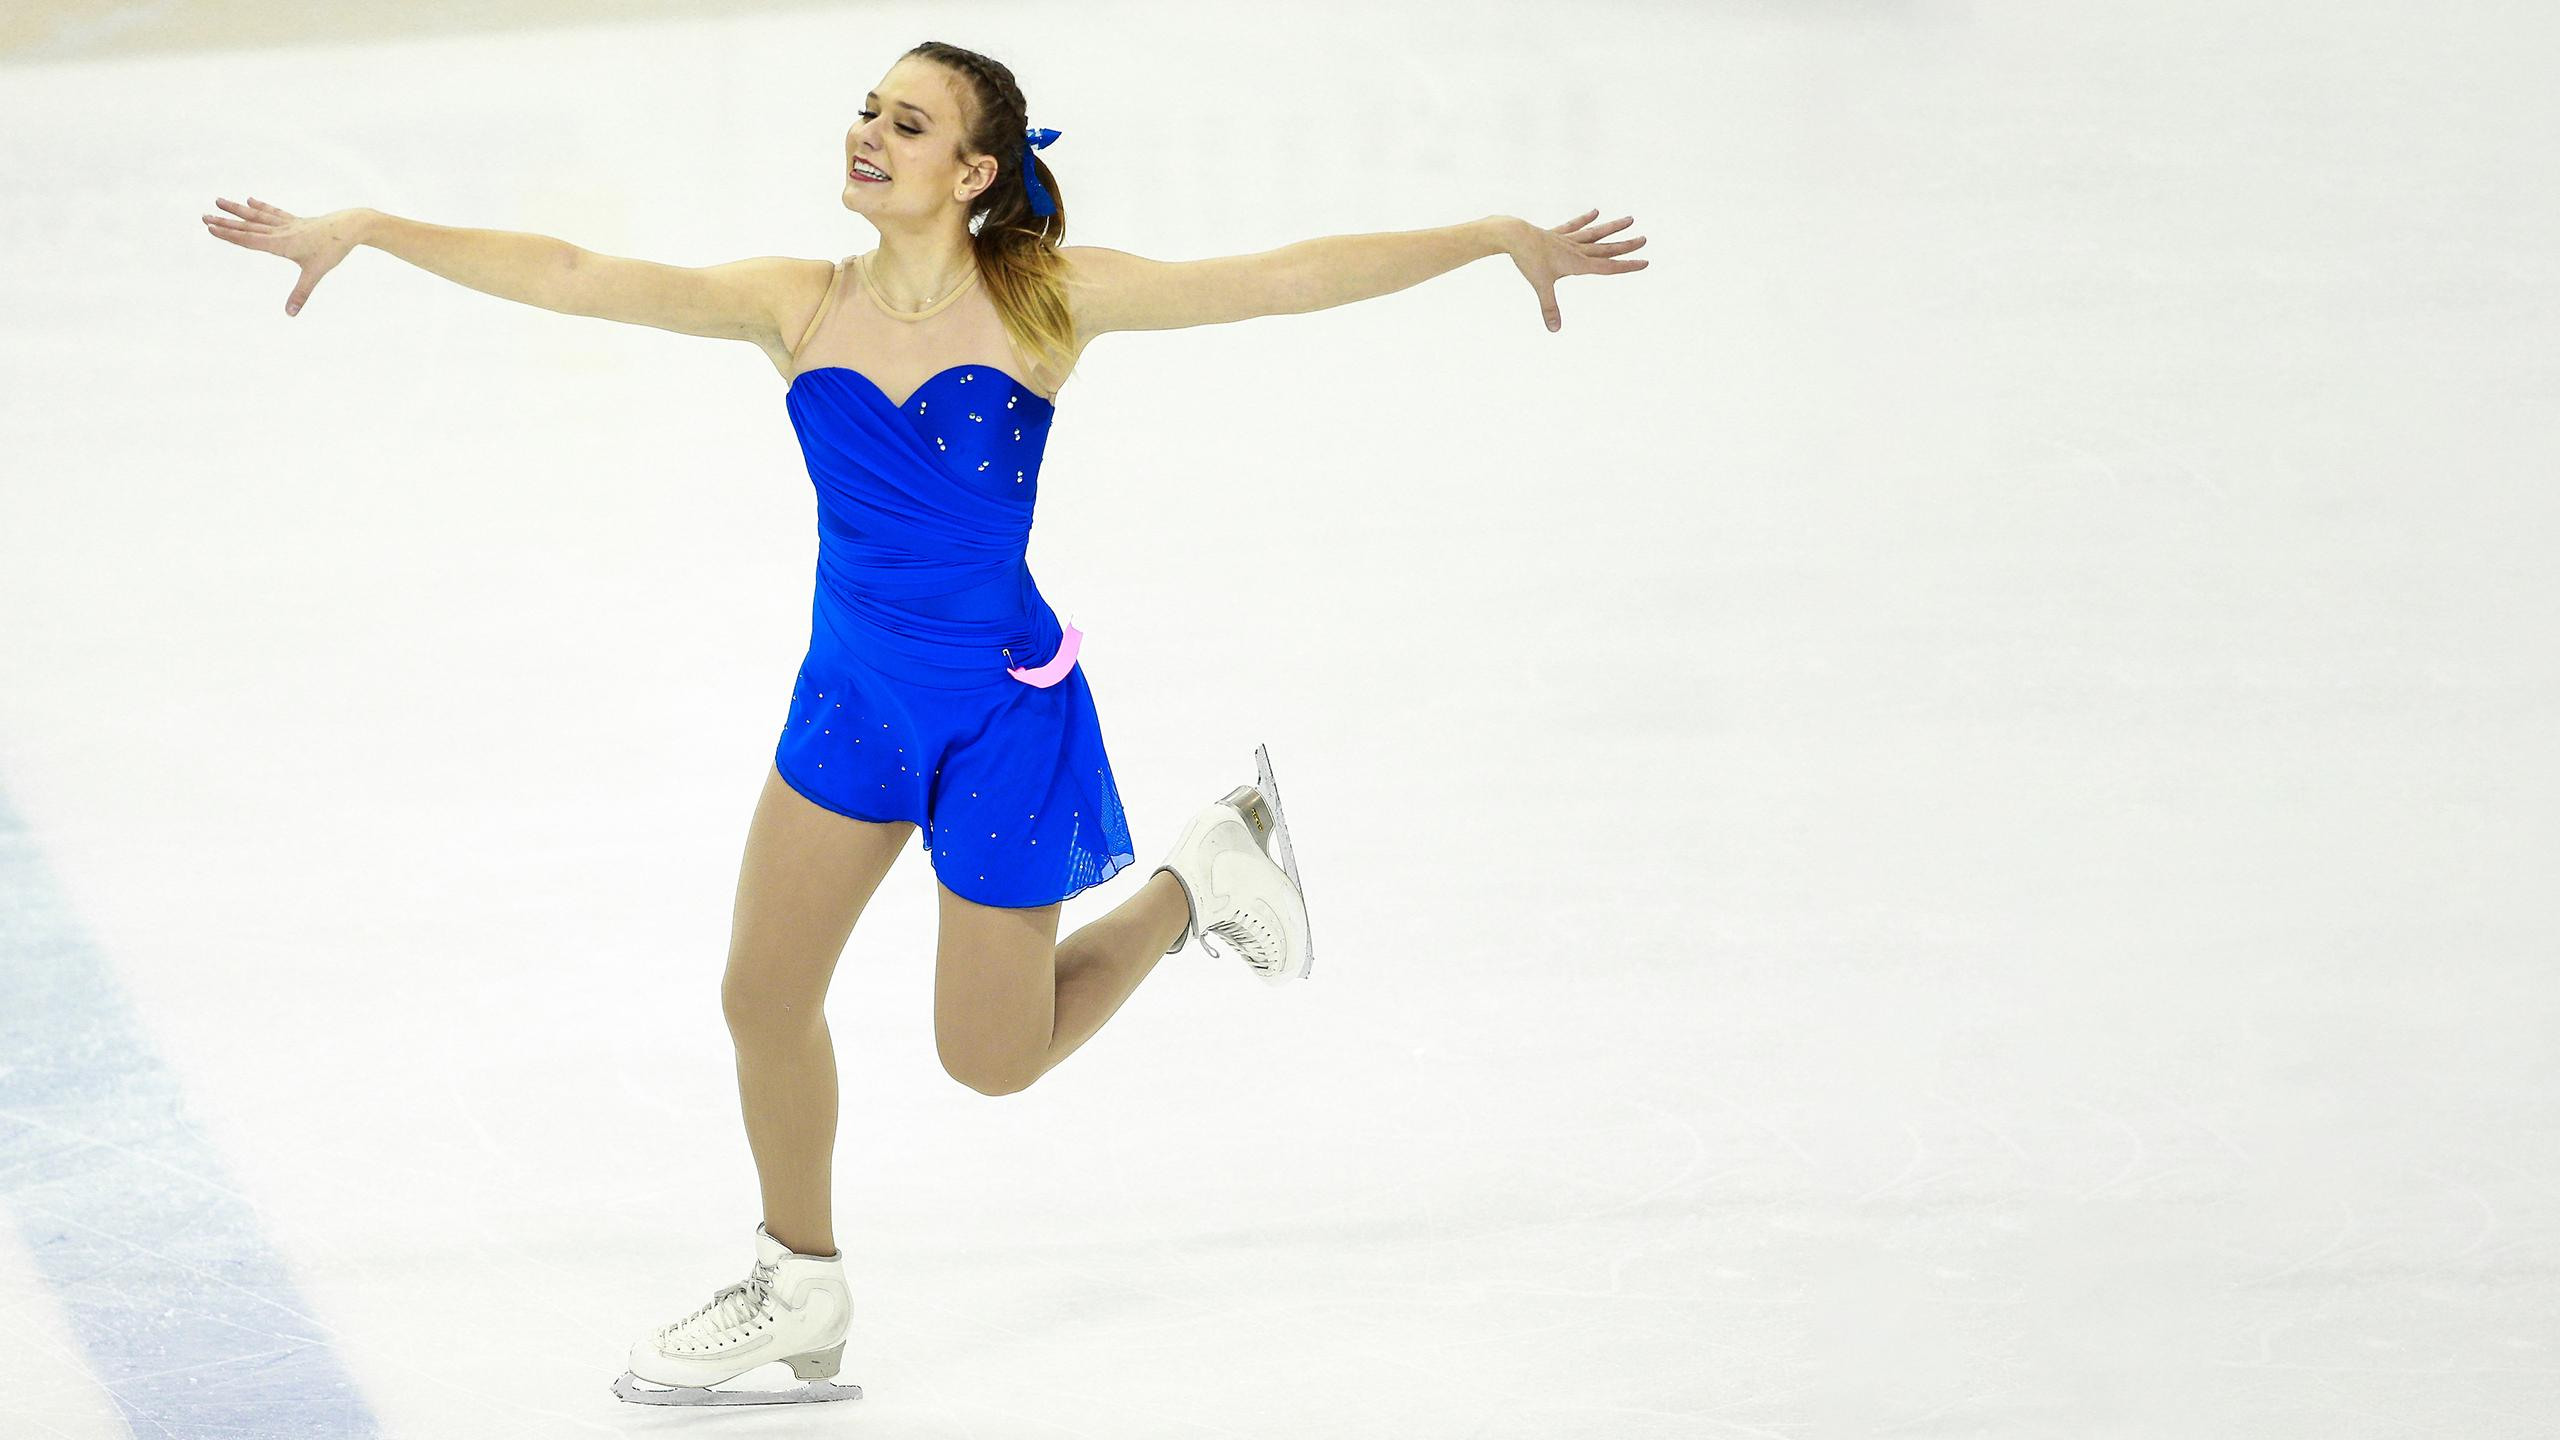 A figure skater smiling as she balances on one skate with her arms extended.